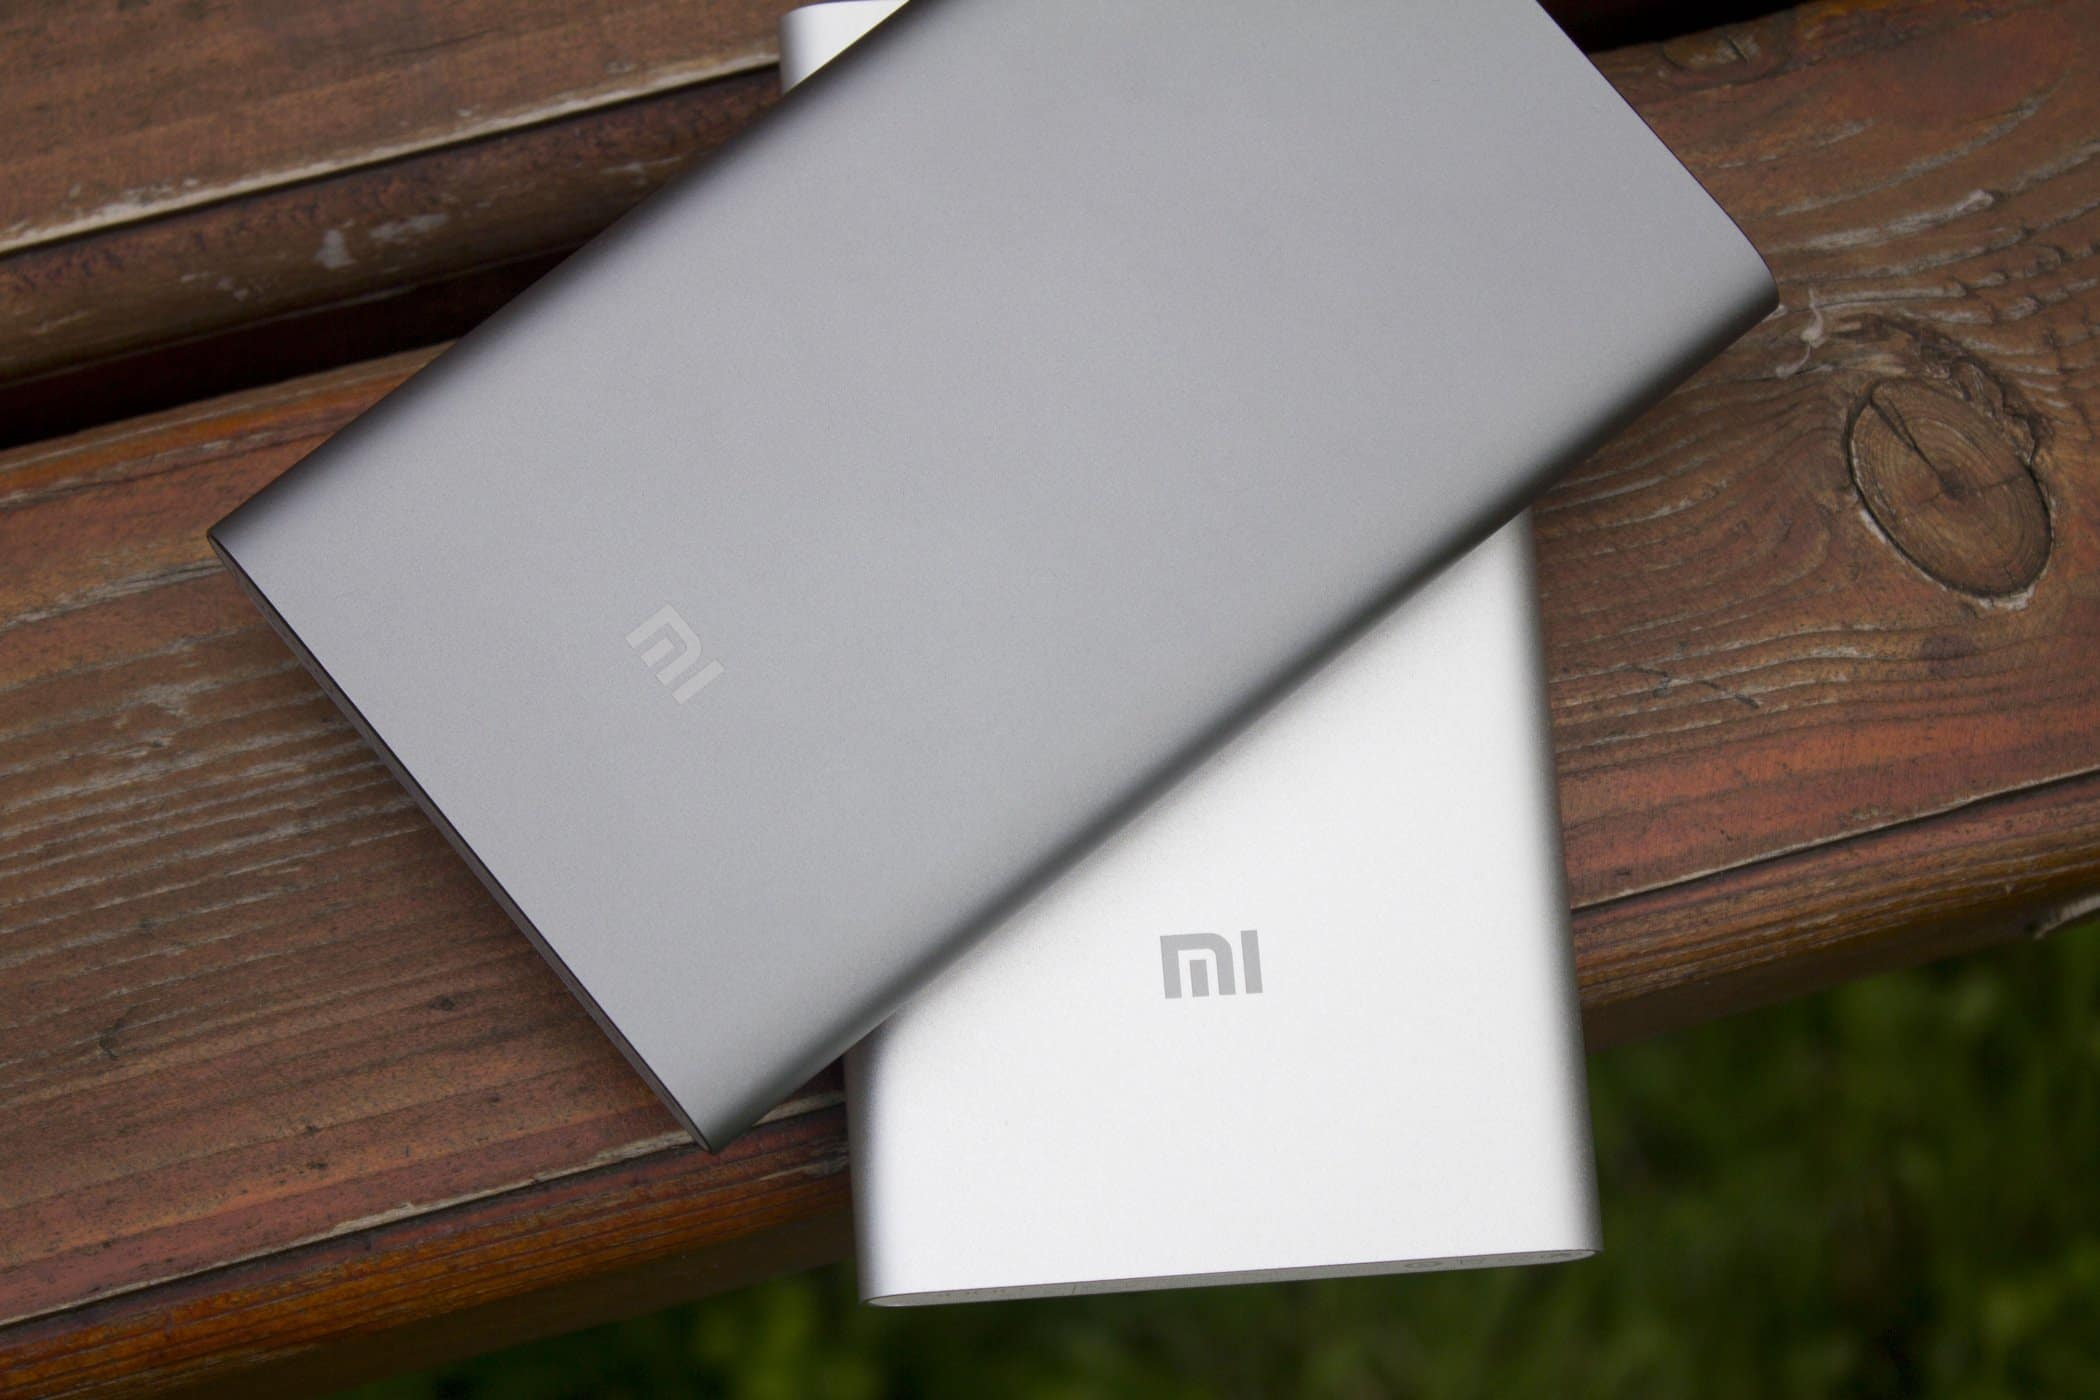 Сравнение Xiaomi Mi Power Bank Pro 10000 мАч и Xiaomi Mi Power Bank 5000 мАч